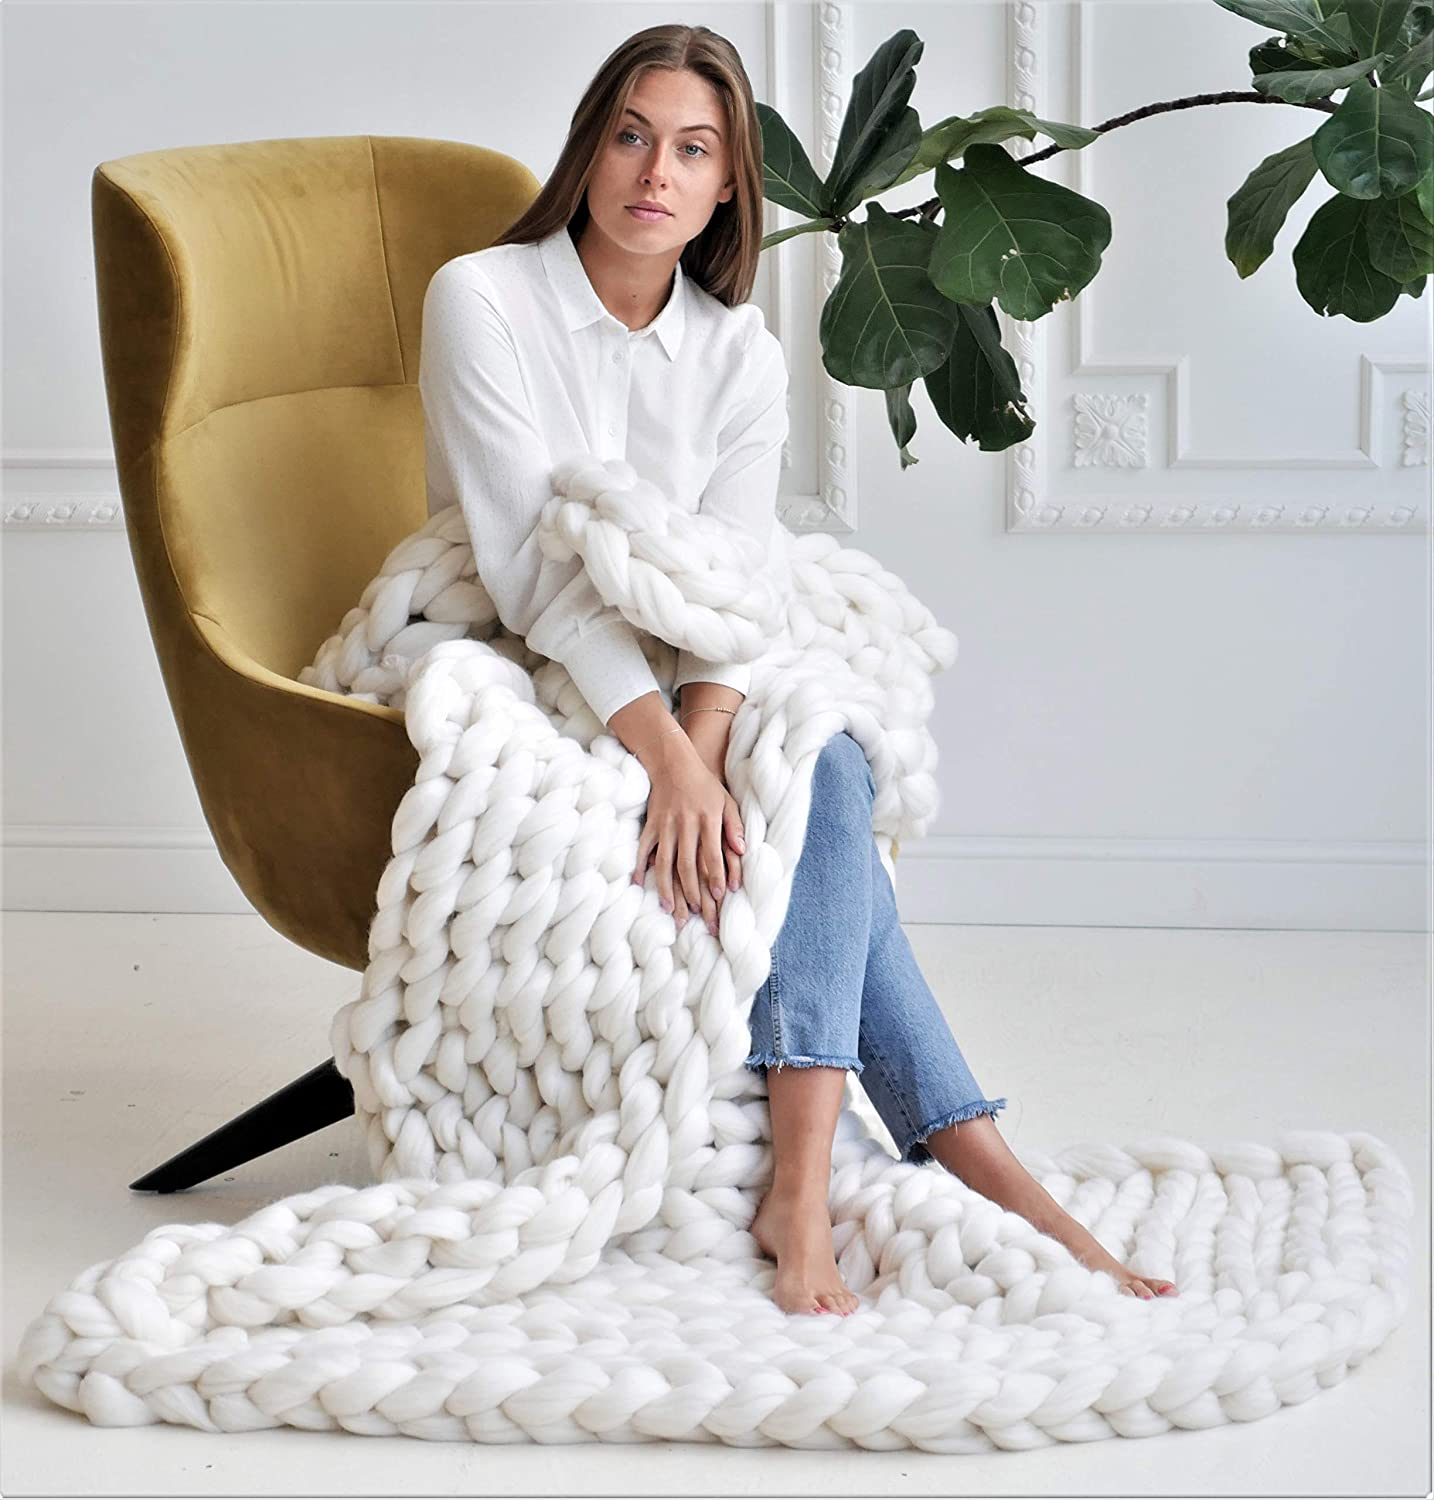 Image of Chunky blanket - Merino blanket - Cheap blanket - Merino throw - Chunky throw - Quilt - Optimal size 40x60' - order from wholesalers - pure merino wool - arm knitting - Giant throw Home and Kitchen